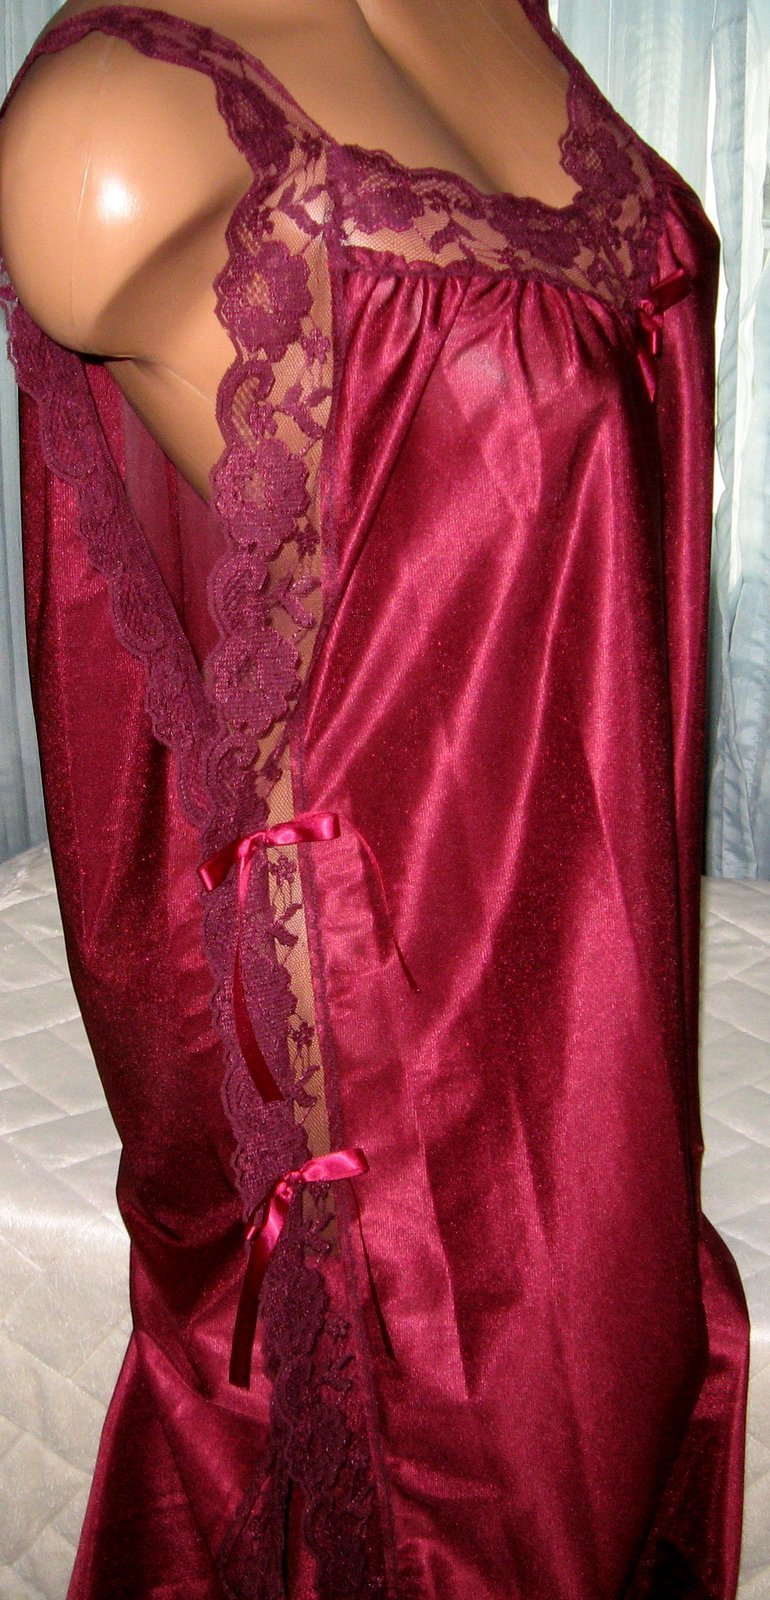 Burgundy Nylon Lace Side Toga Style Long Nightgown L/XL Lingerie Sleepwear